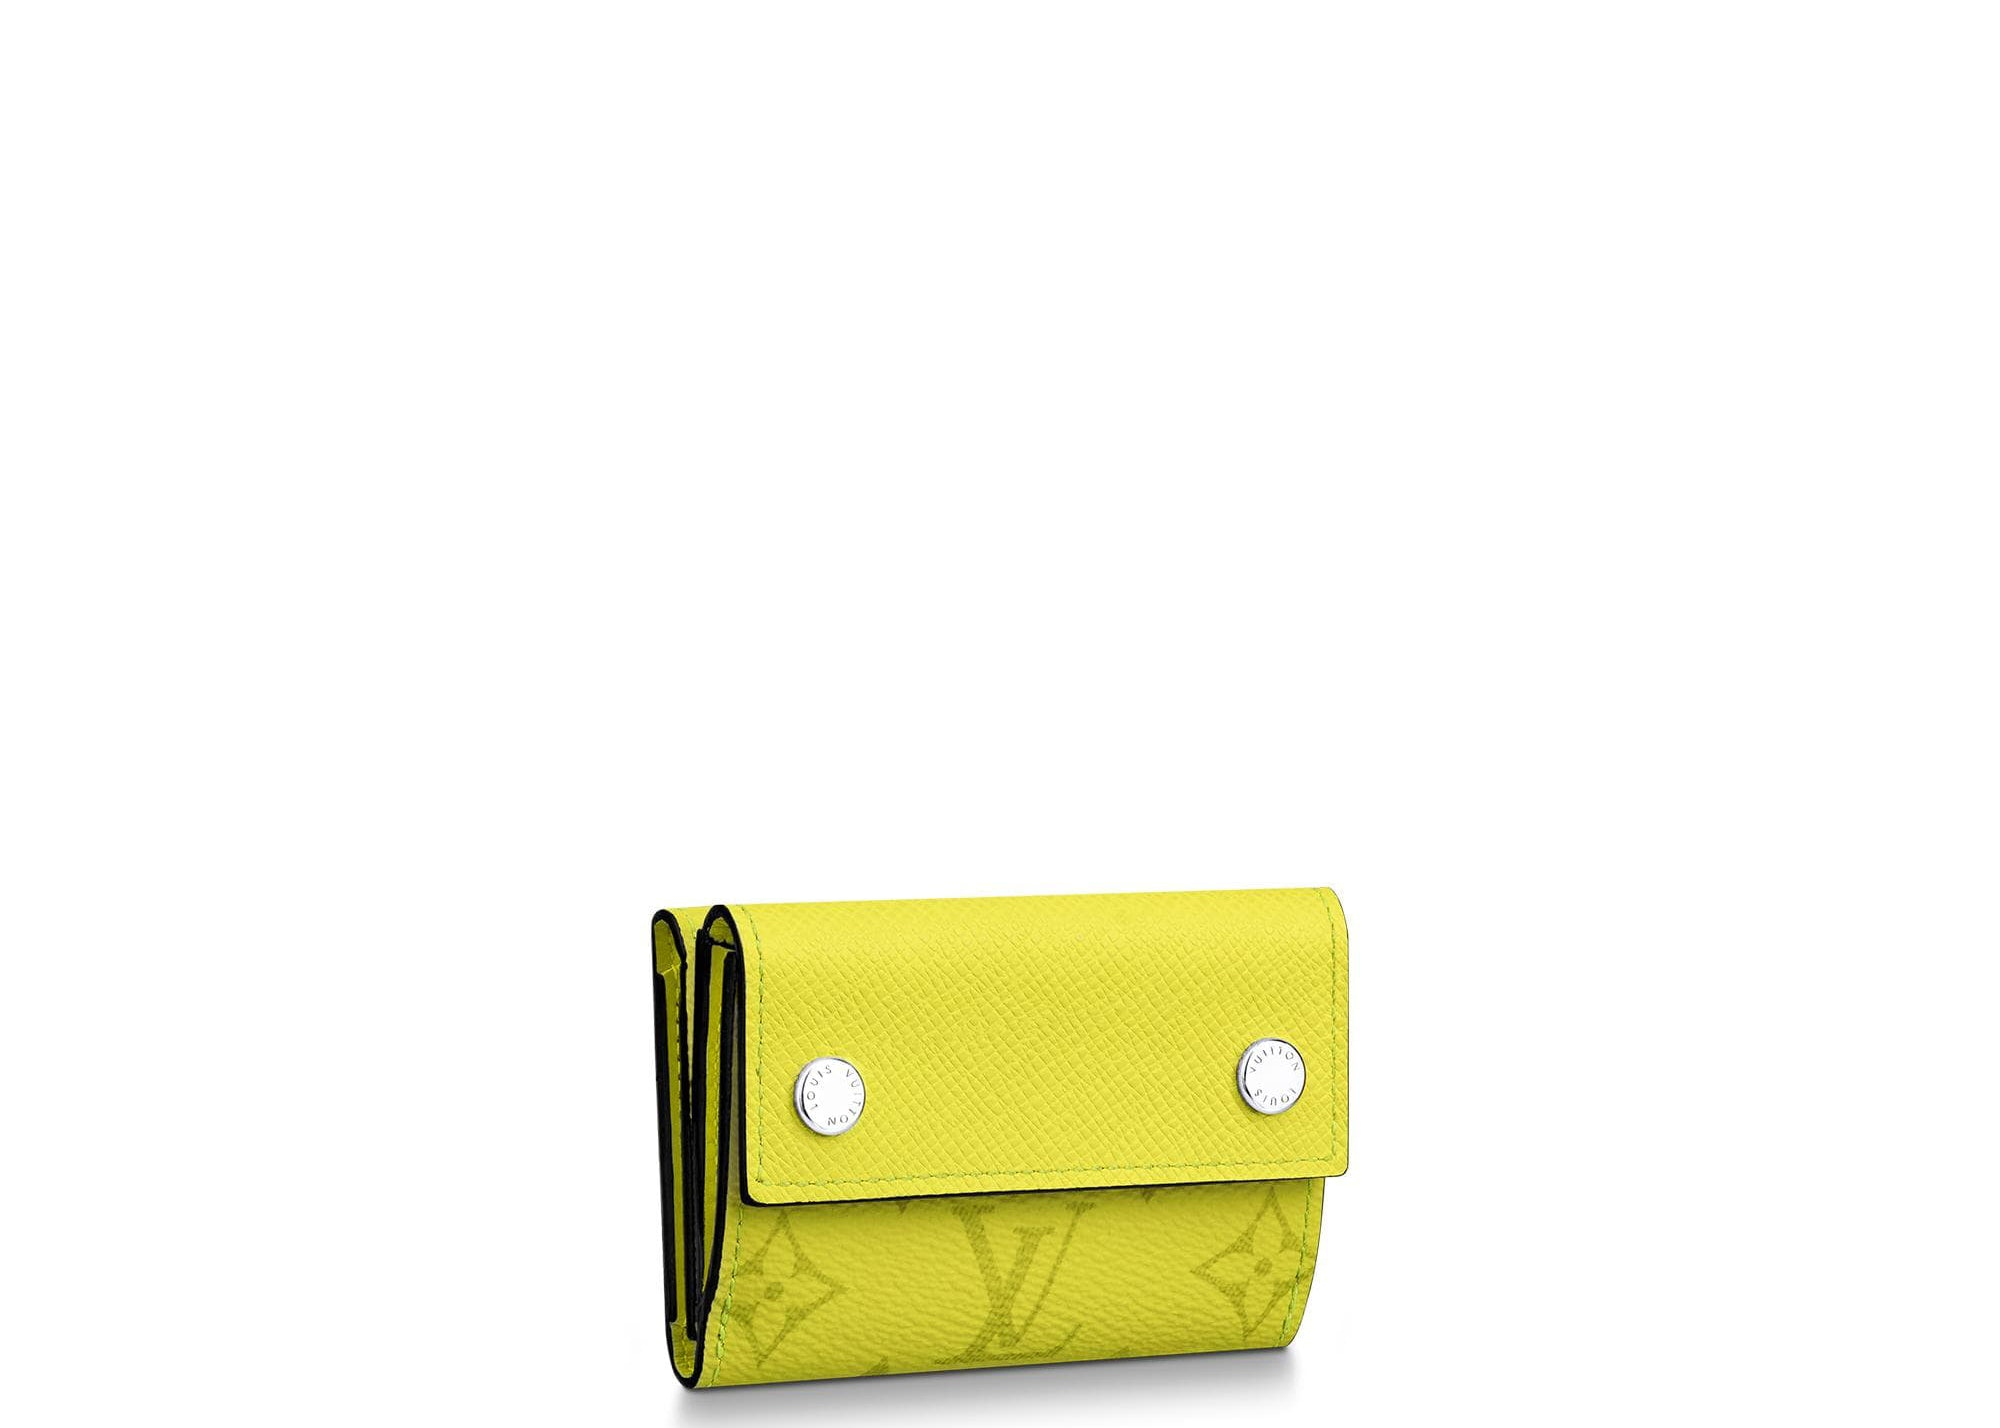 Louis Vuitton Discovery Compact Wallet Monogram Bahia Taiga Yellow